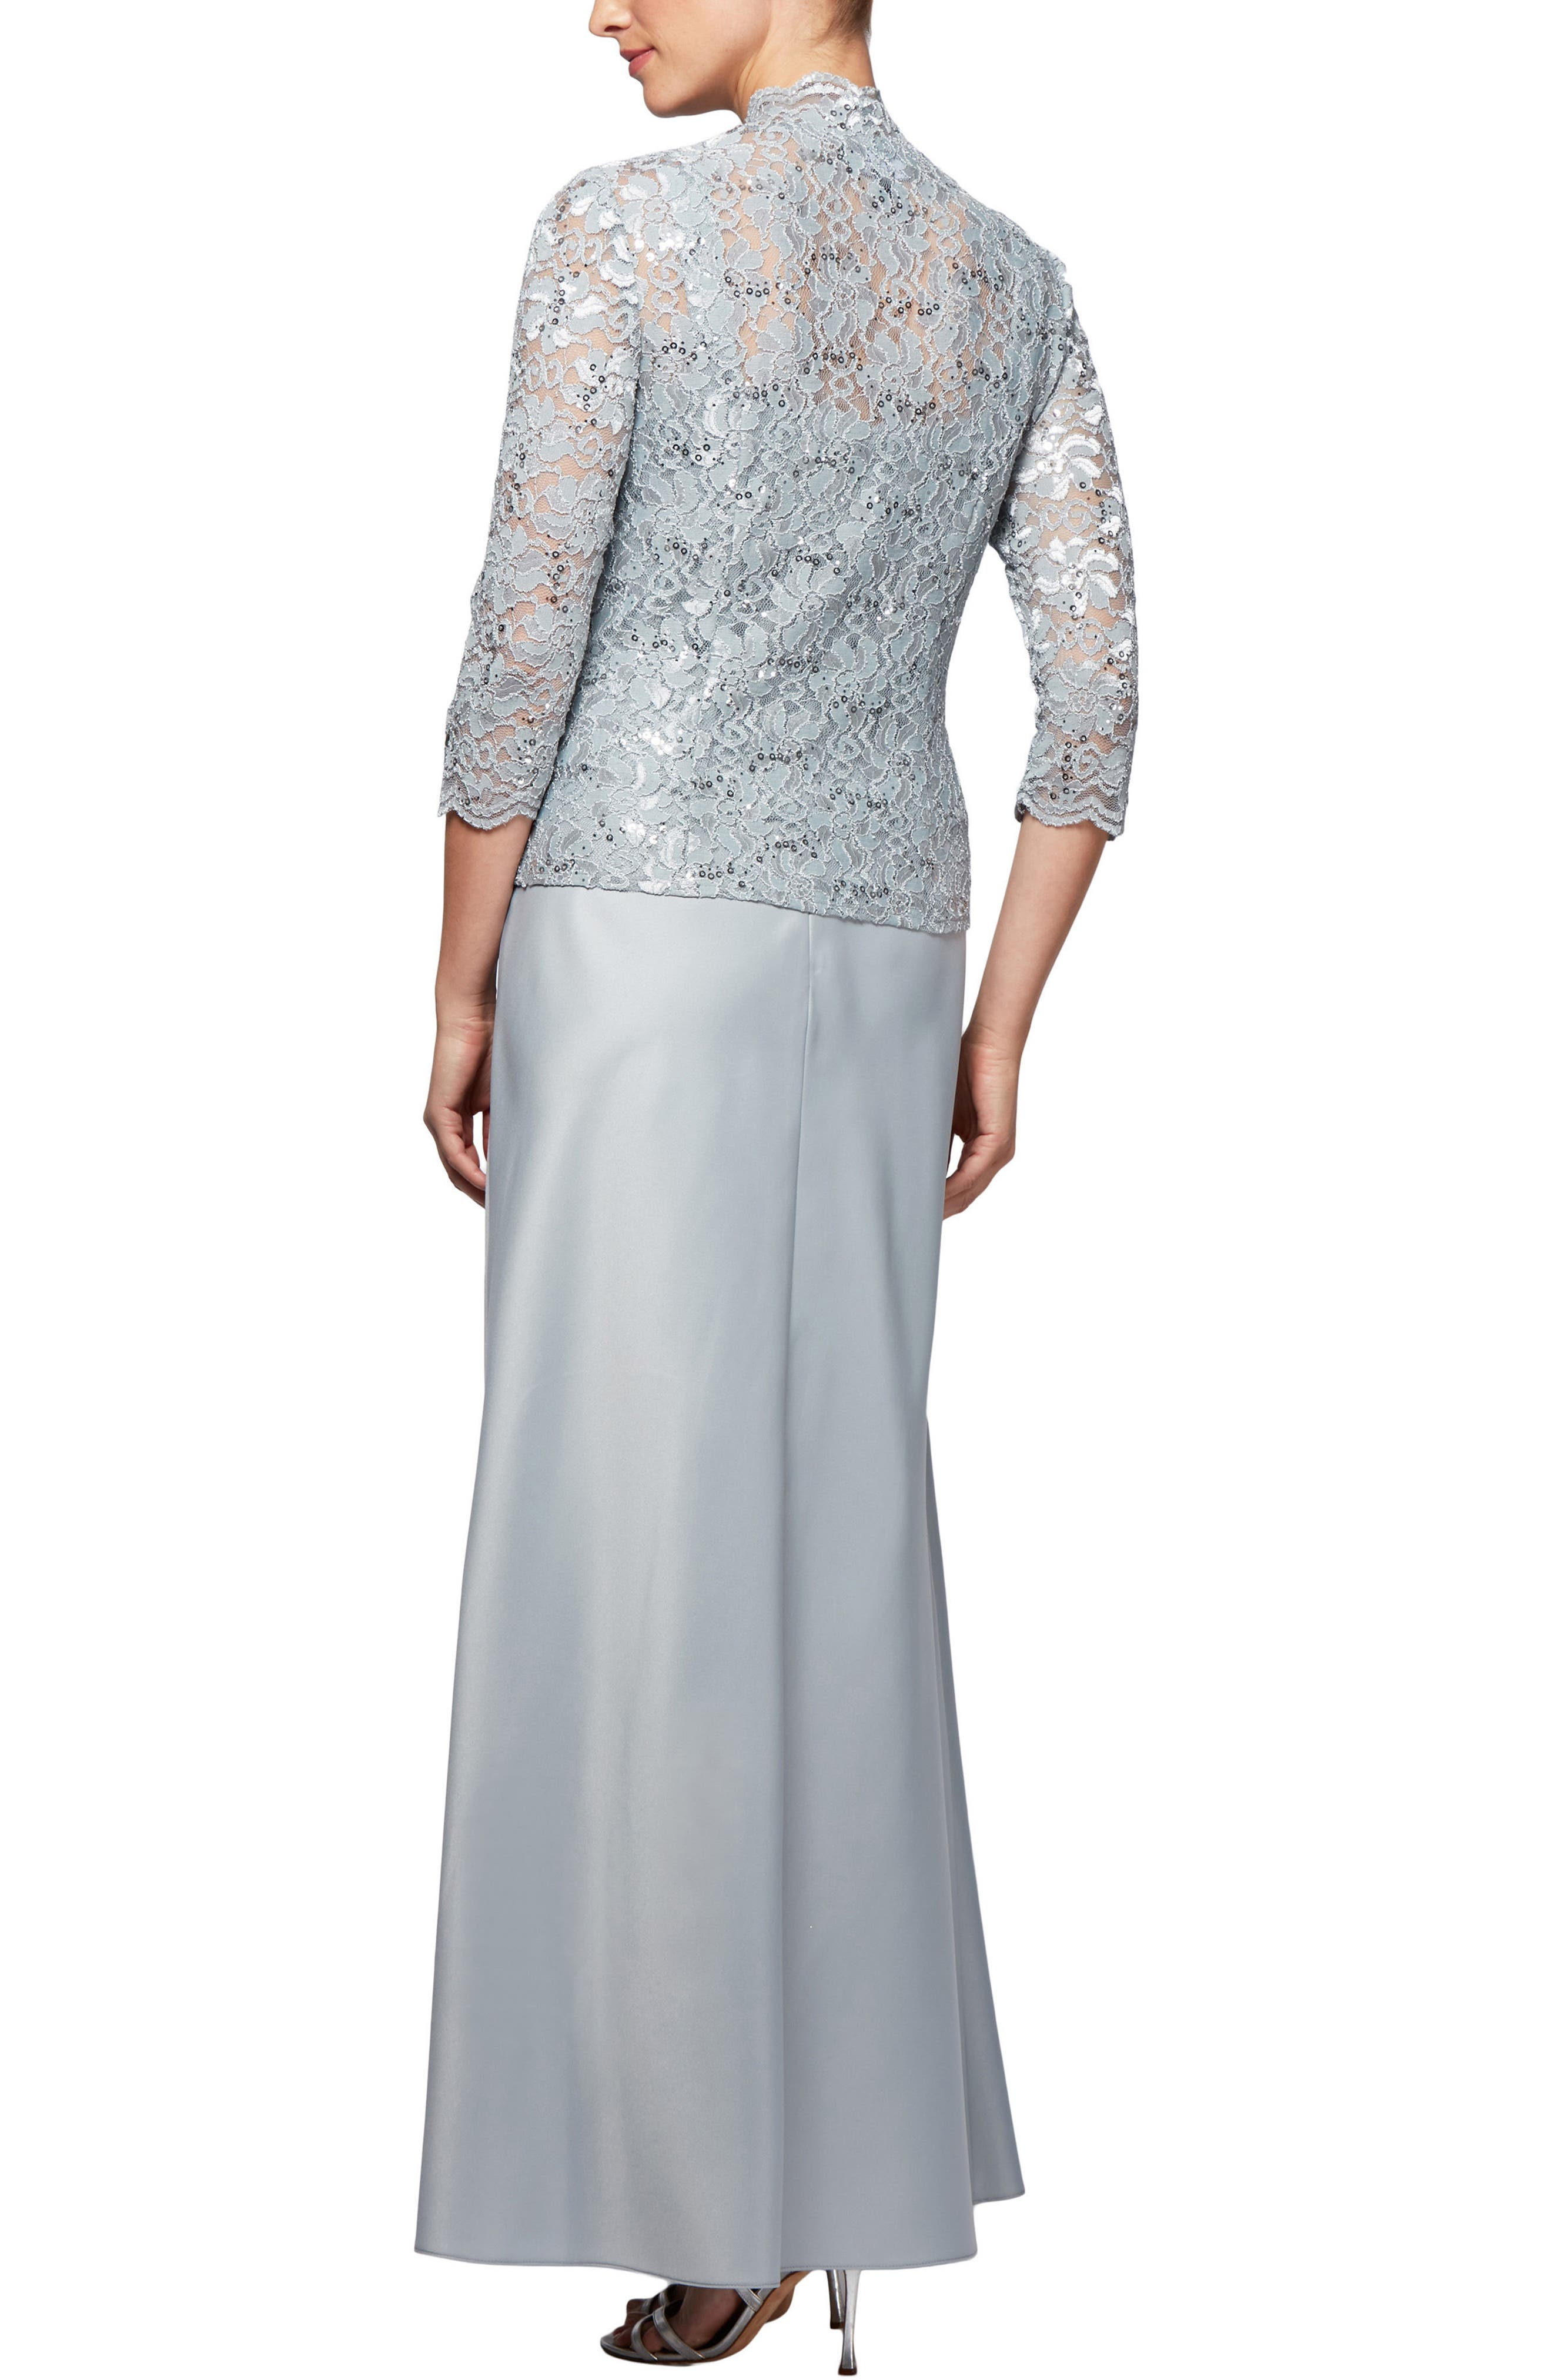 Scalloped Lace Gown with Jacket,                             Alternate thumbnail 2, color,                             043